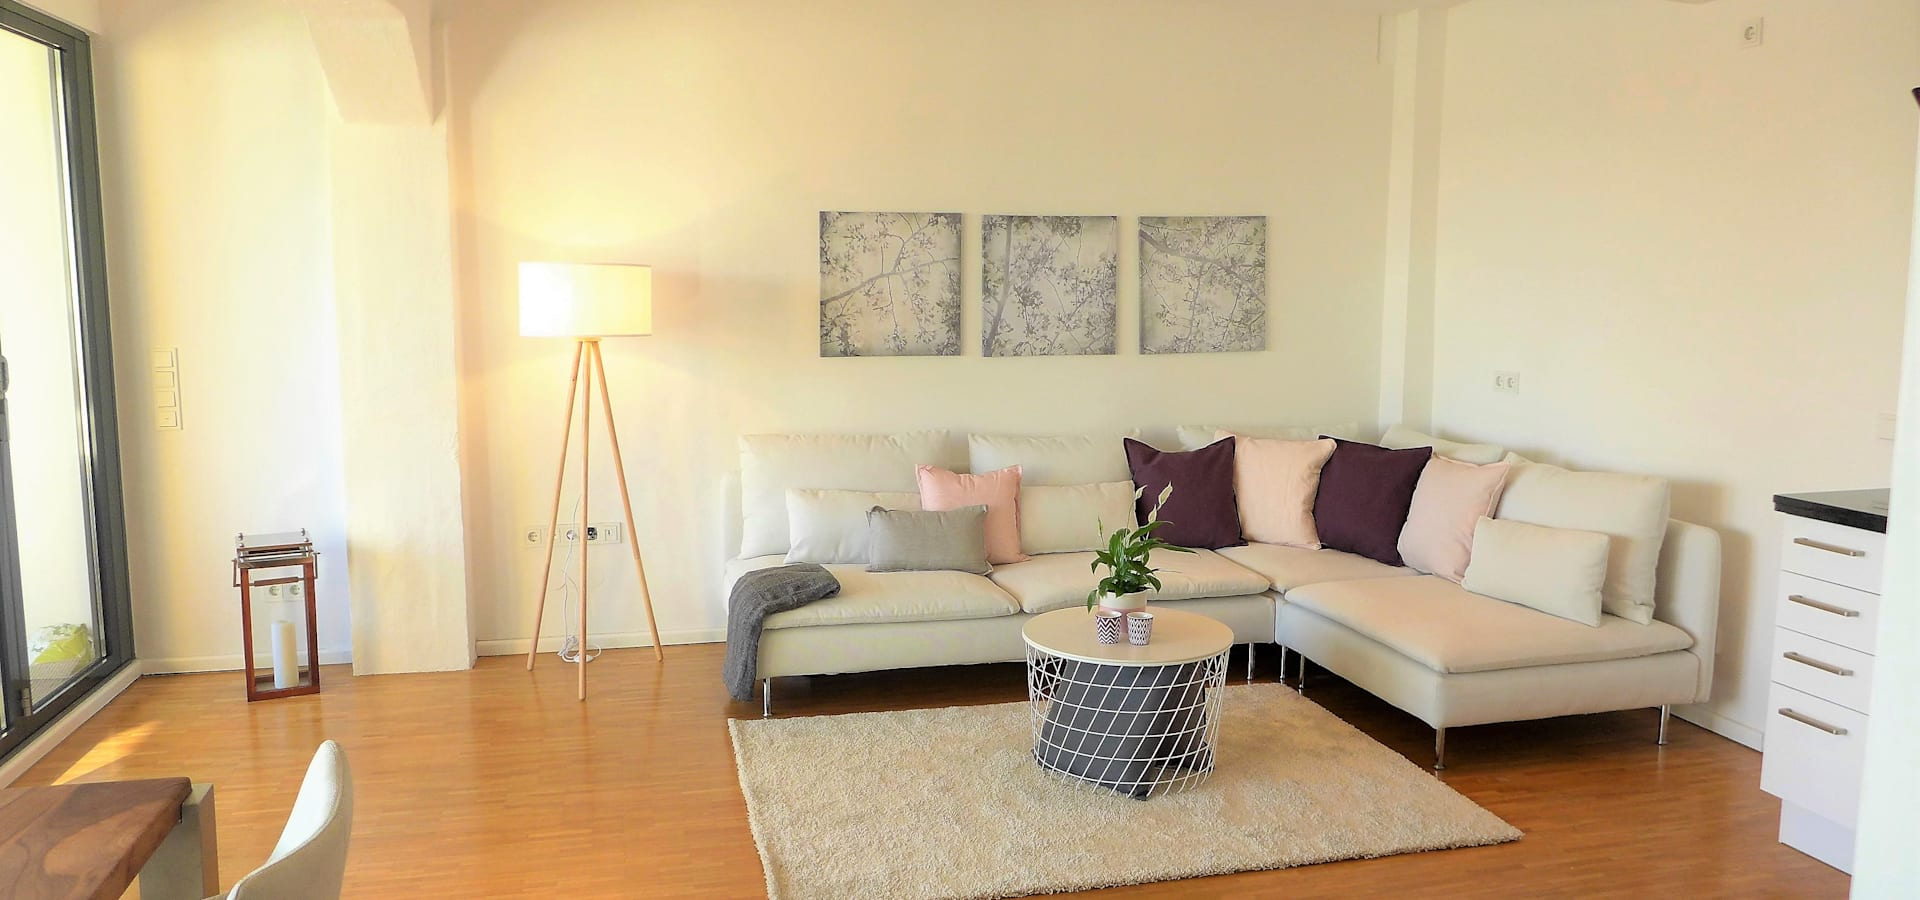 RaumEffekt Home Staging: Home Staging in Köln | homify